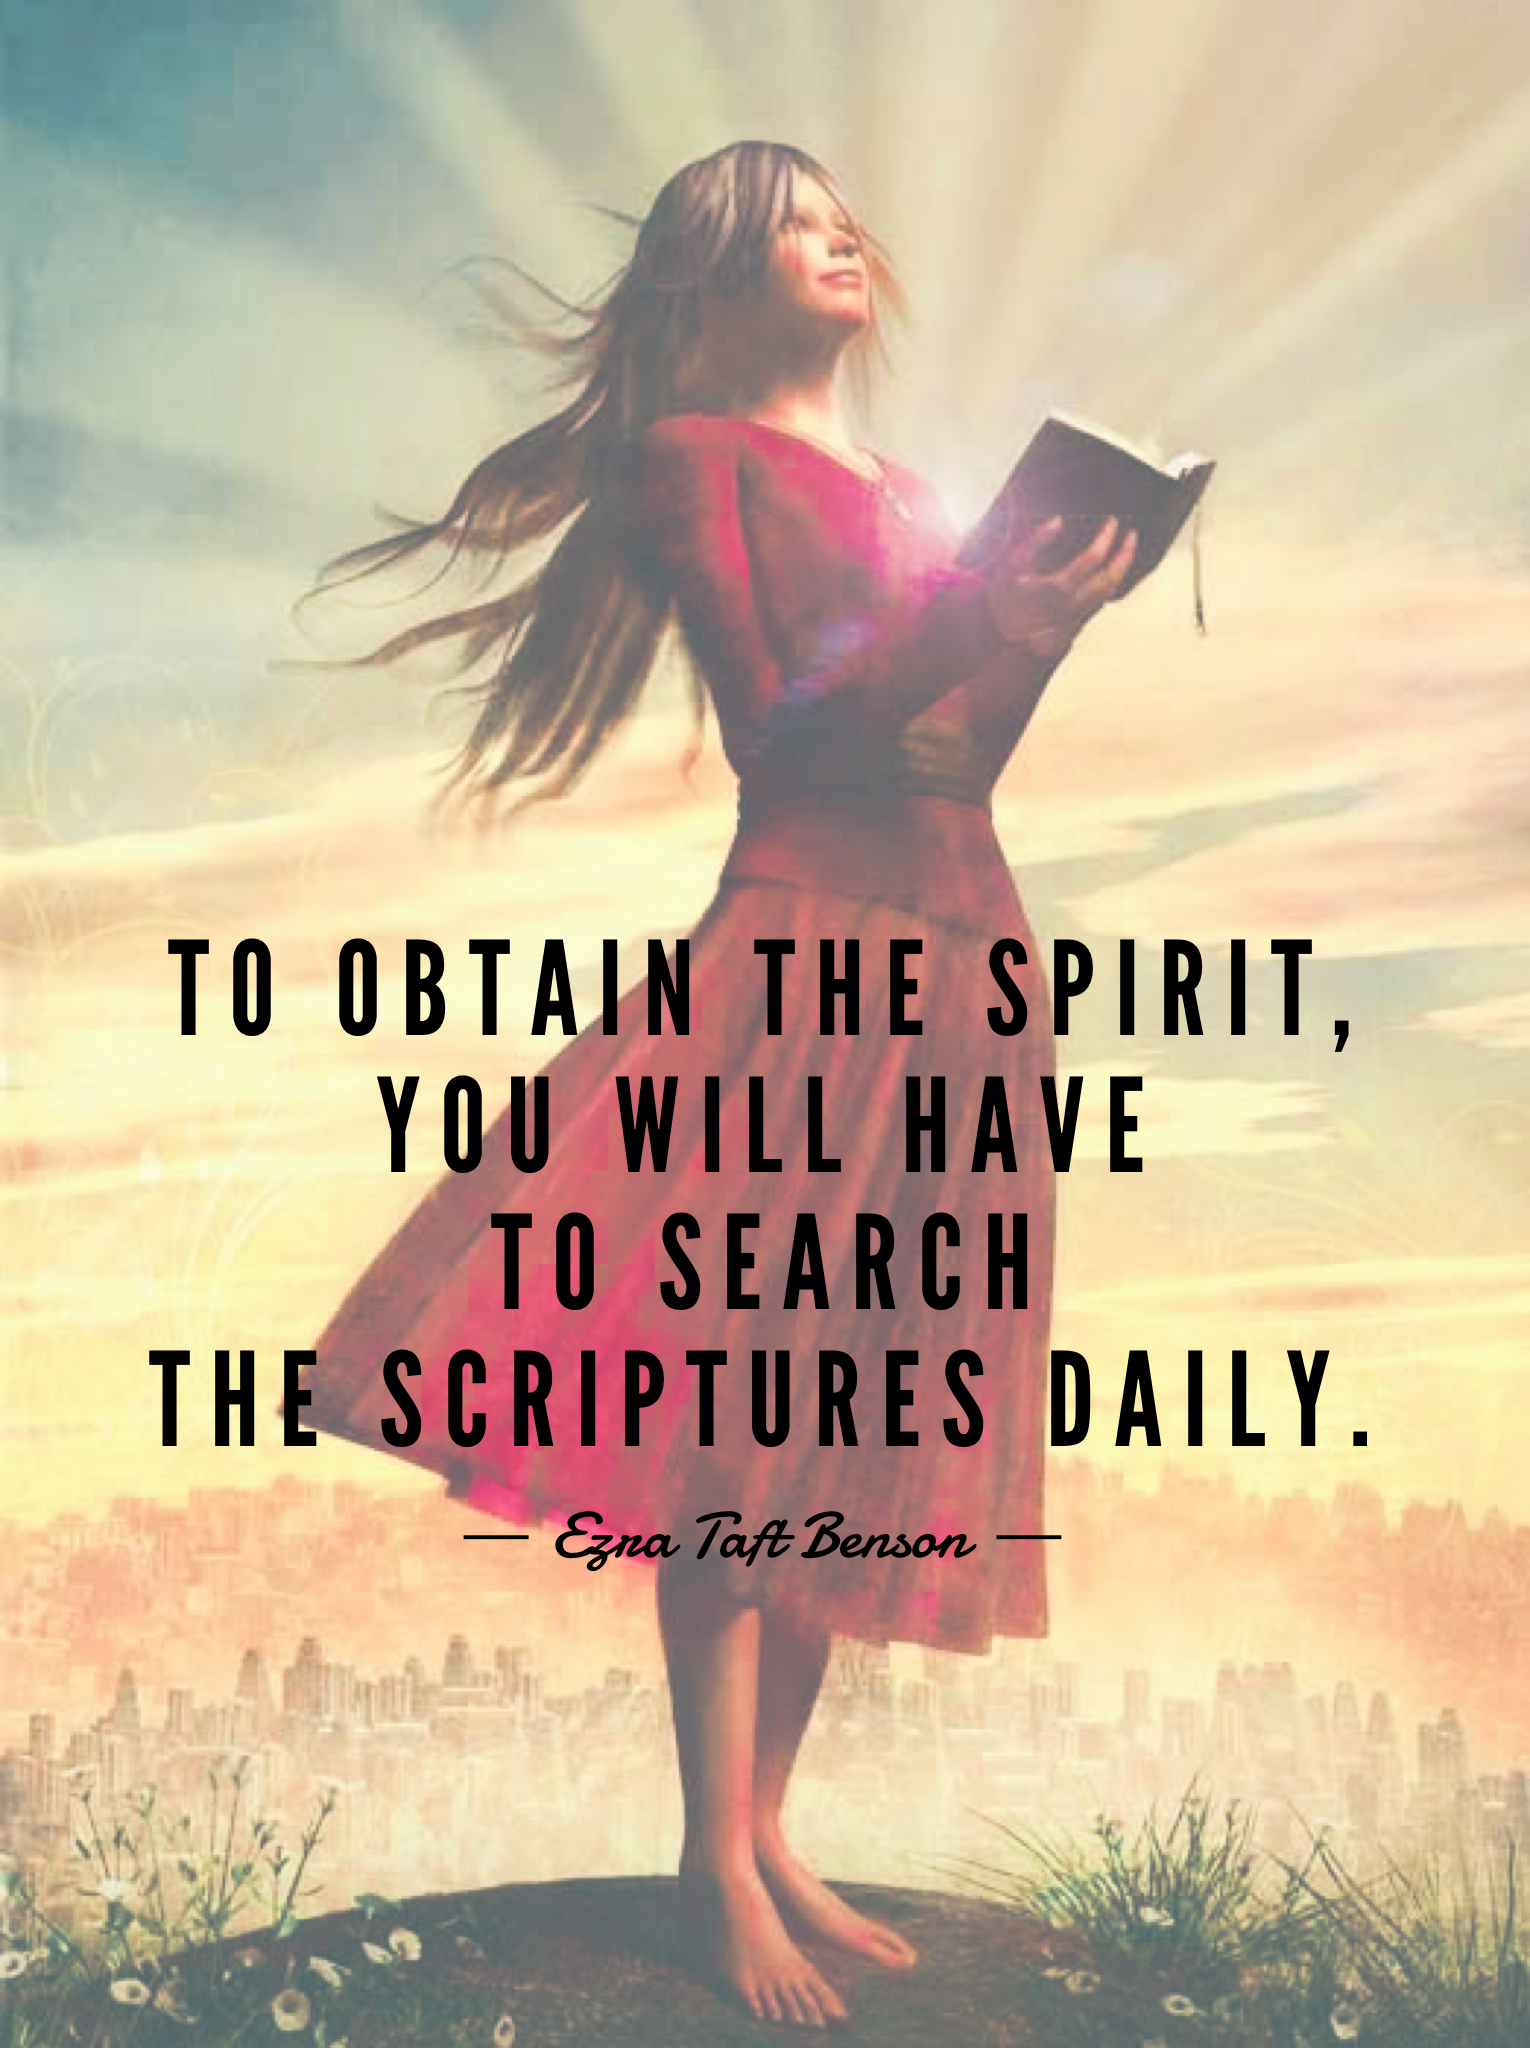 To obtain the Spirit, you will have to search the scriptures daily